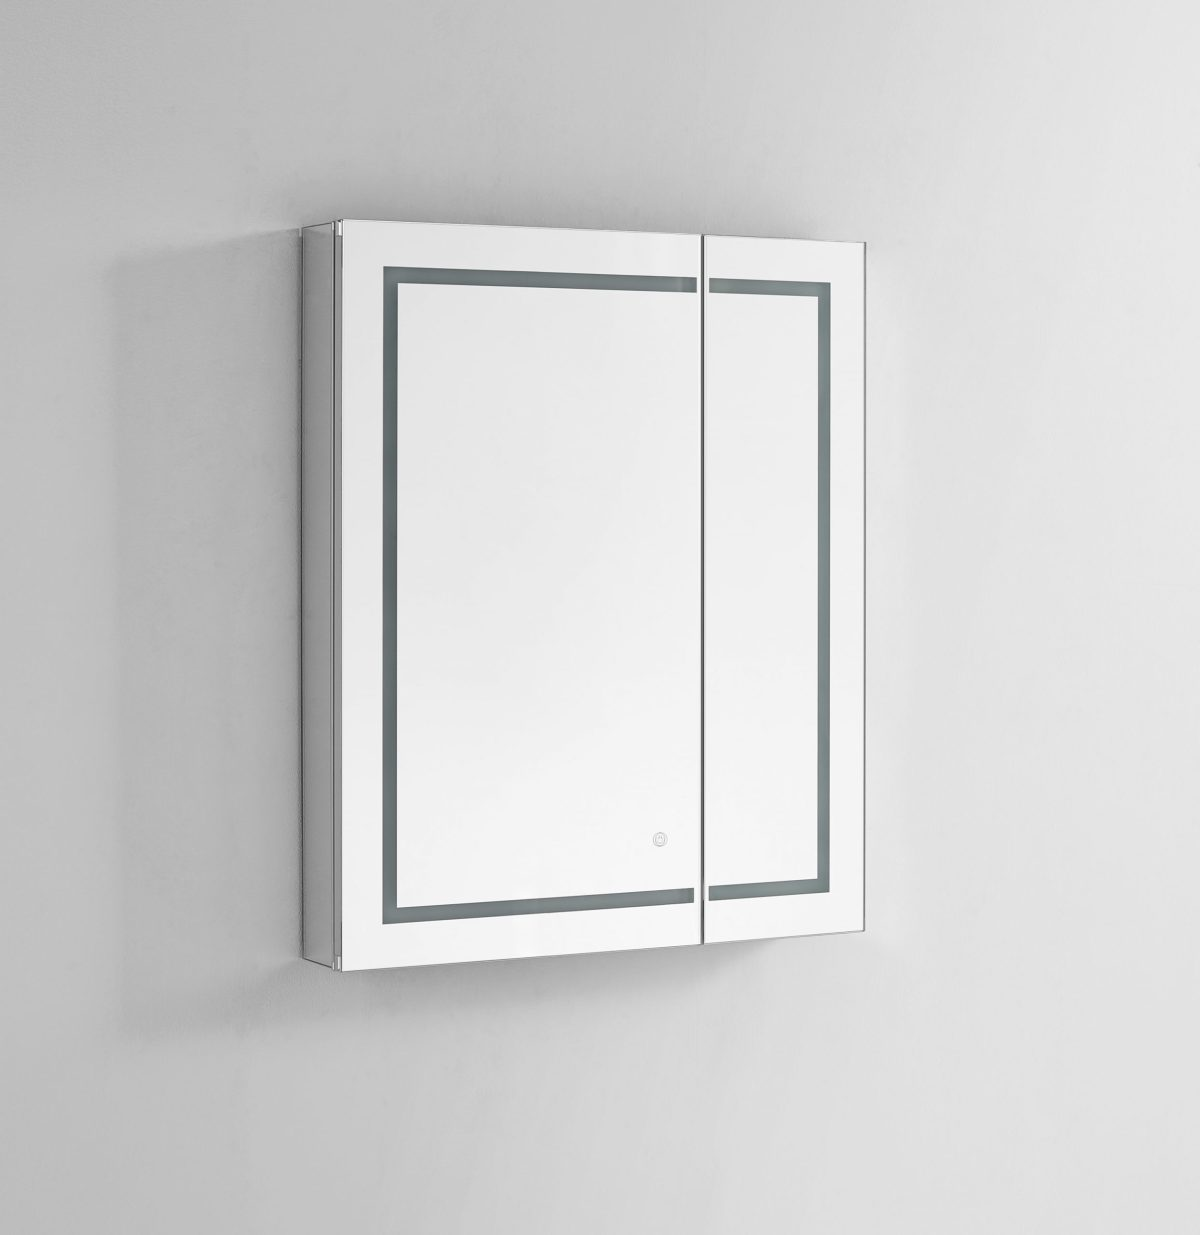 AQUADOM Royale Plus 30 inches x 30 inches LED Lighted Mirror Glass Medicine Cabinet for Bathroom